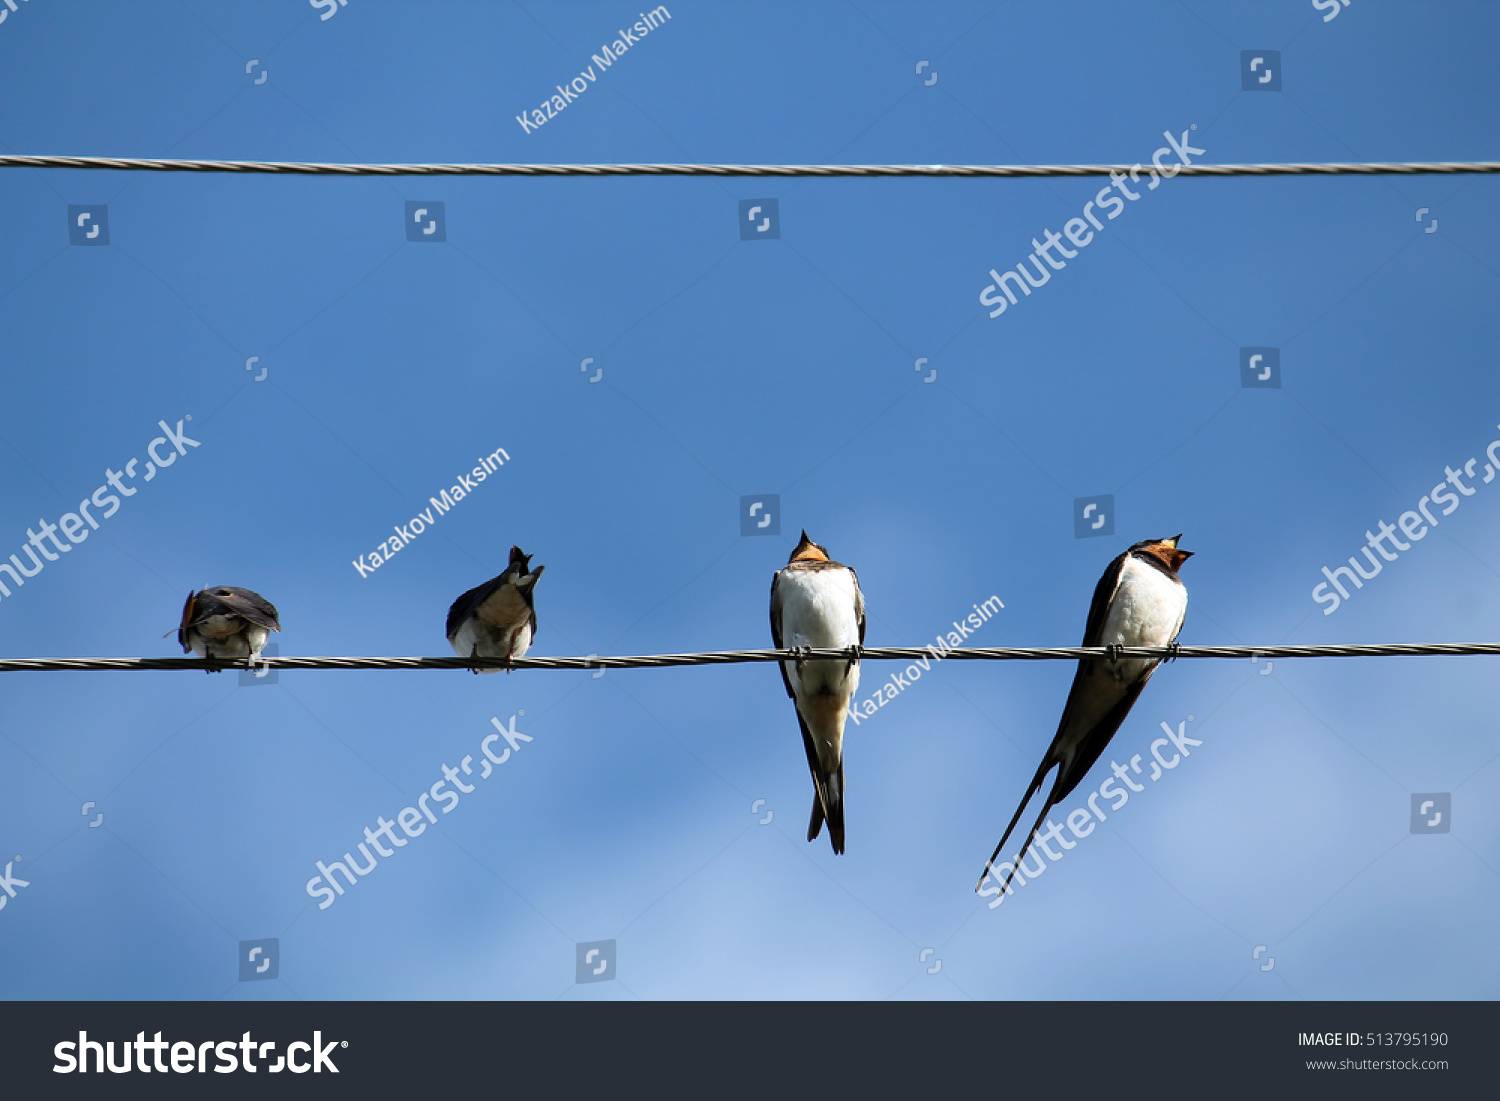 Barn Swallows On Wires Stock Photo (Edit Now) 513795190 - Shutterstock